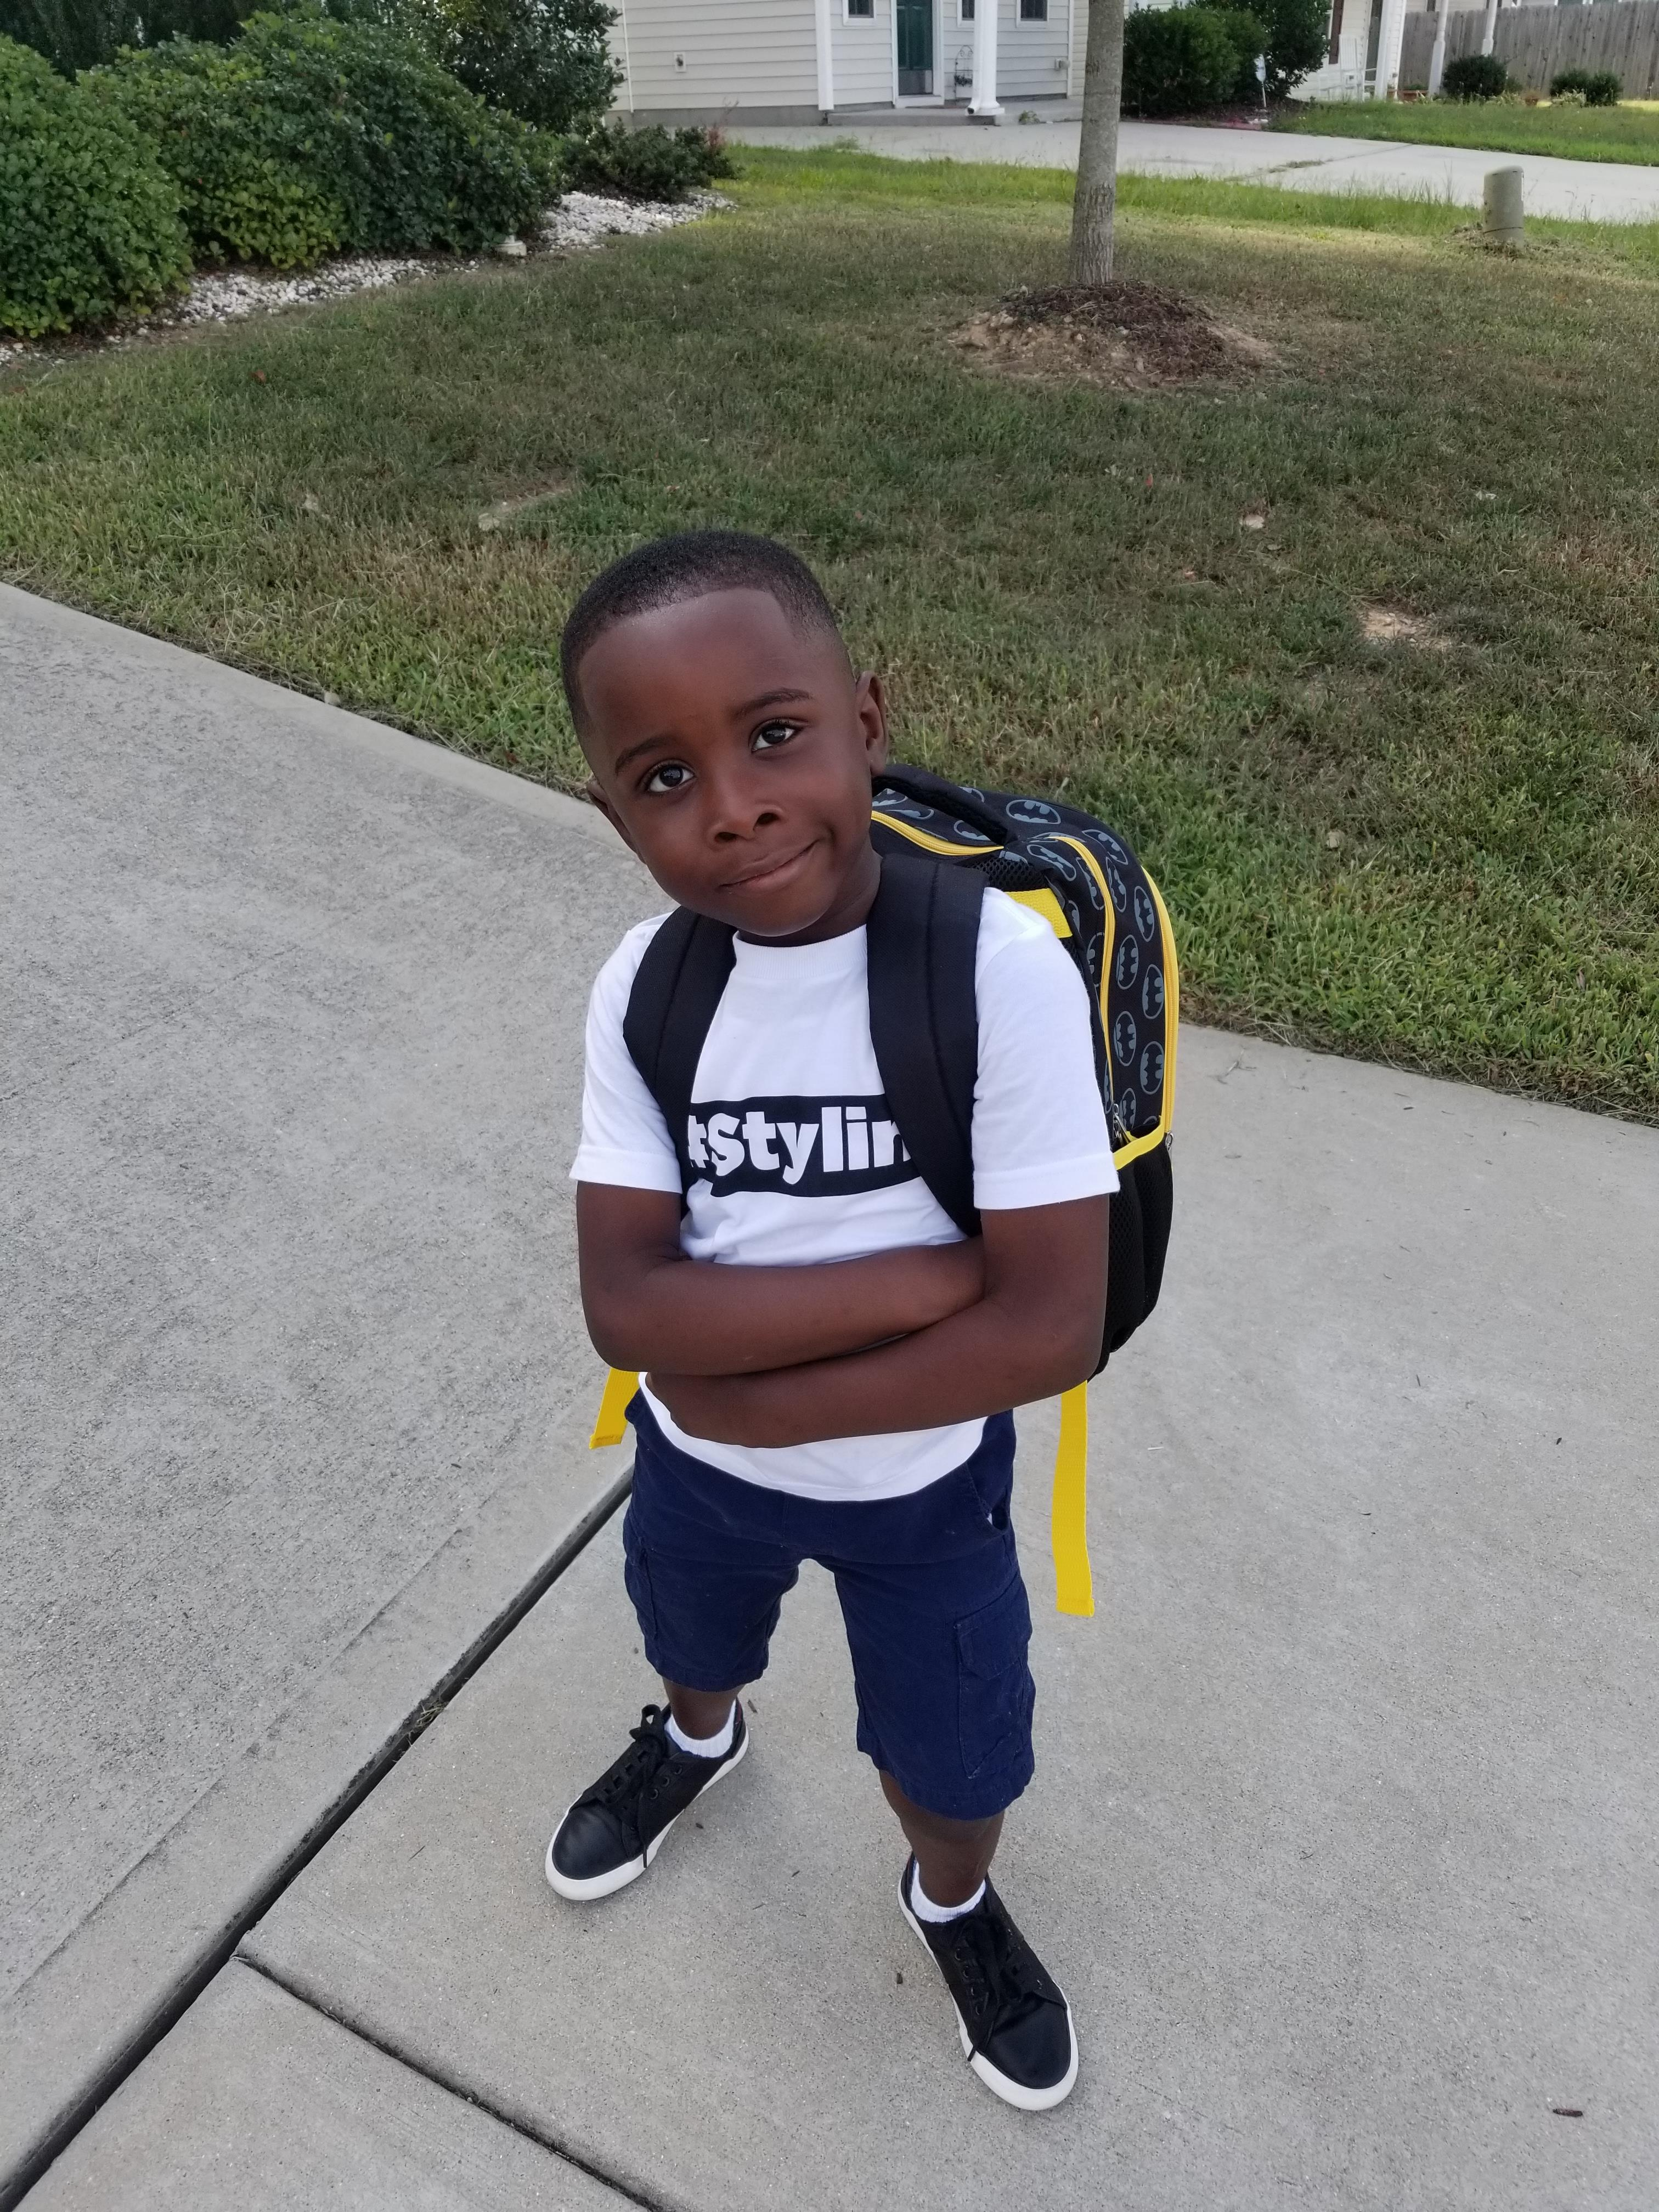 "<div class=""meta image-caption""><div class=""origin-logo origin-image none""><span>none</span></div><span class=""caption-text"">Back to school 2017 (submitted photo)</span></div>"